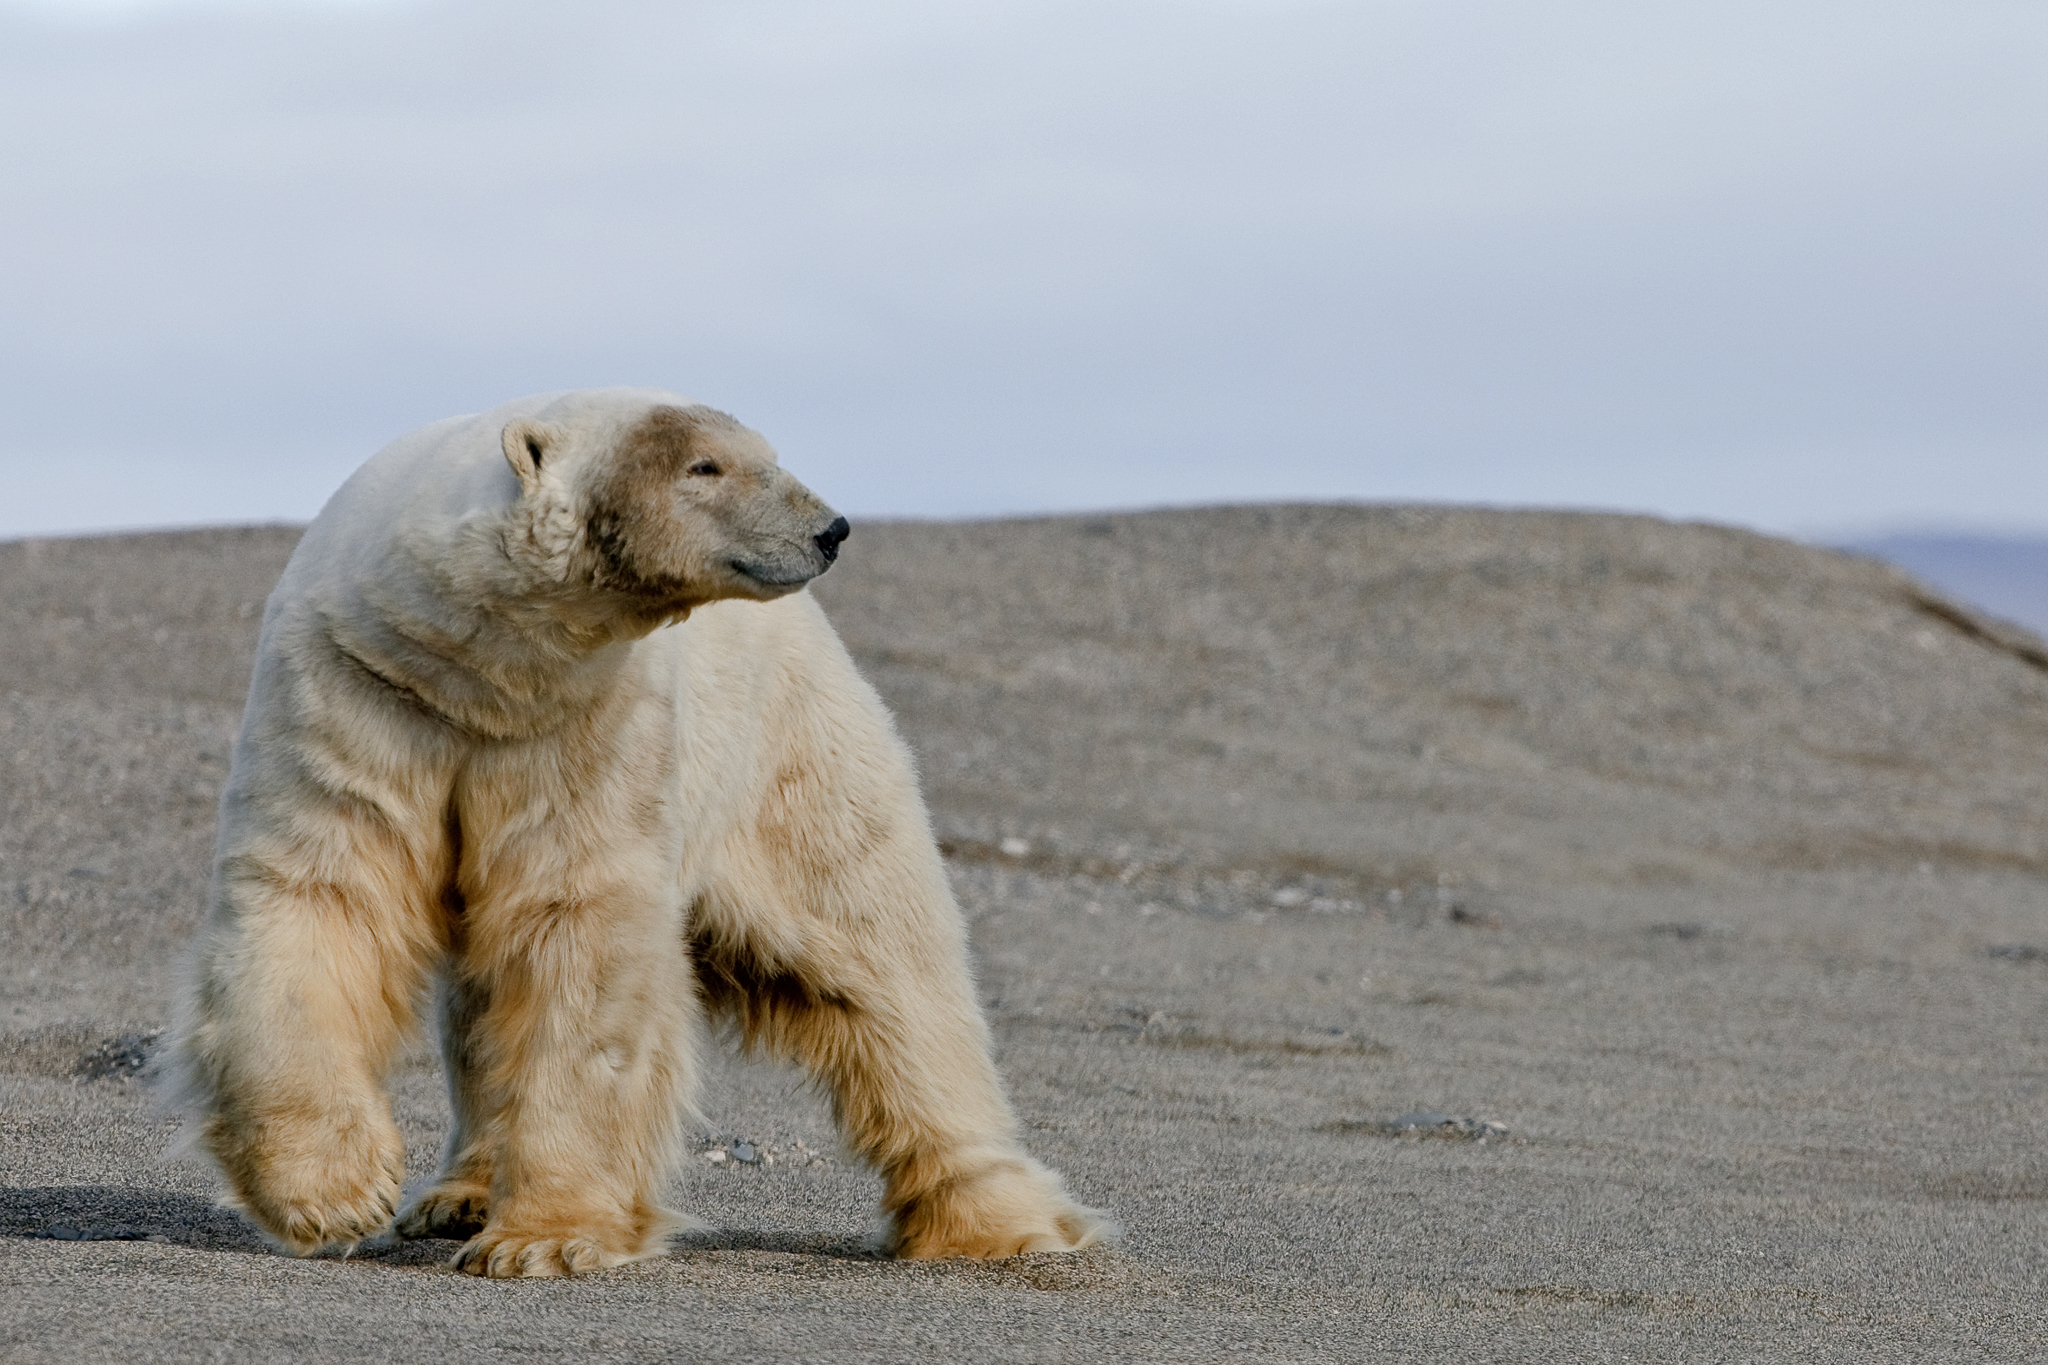 A polar bear (Ursus maritimus) combs one of Wrangel Island's many beaches, perhaps looking for a carcass washed up onshore.